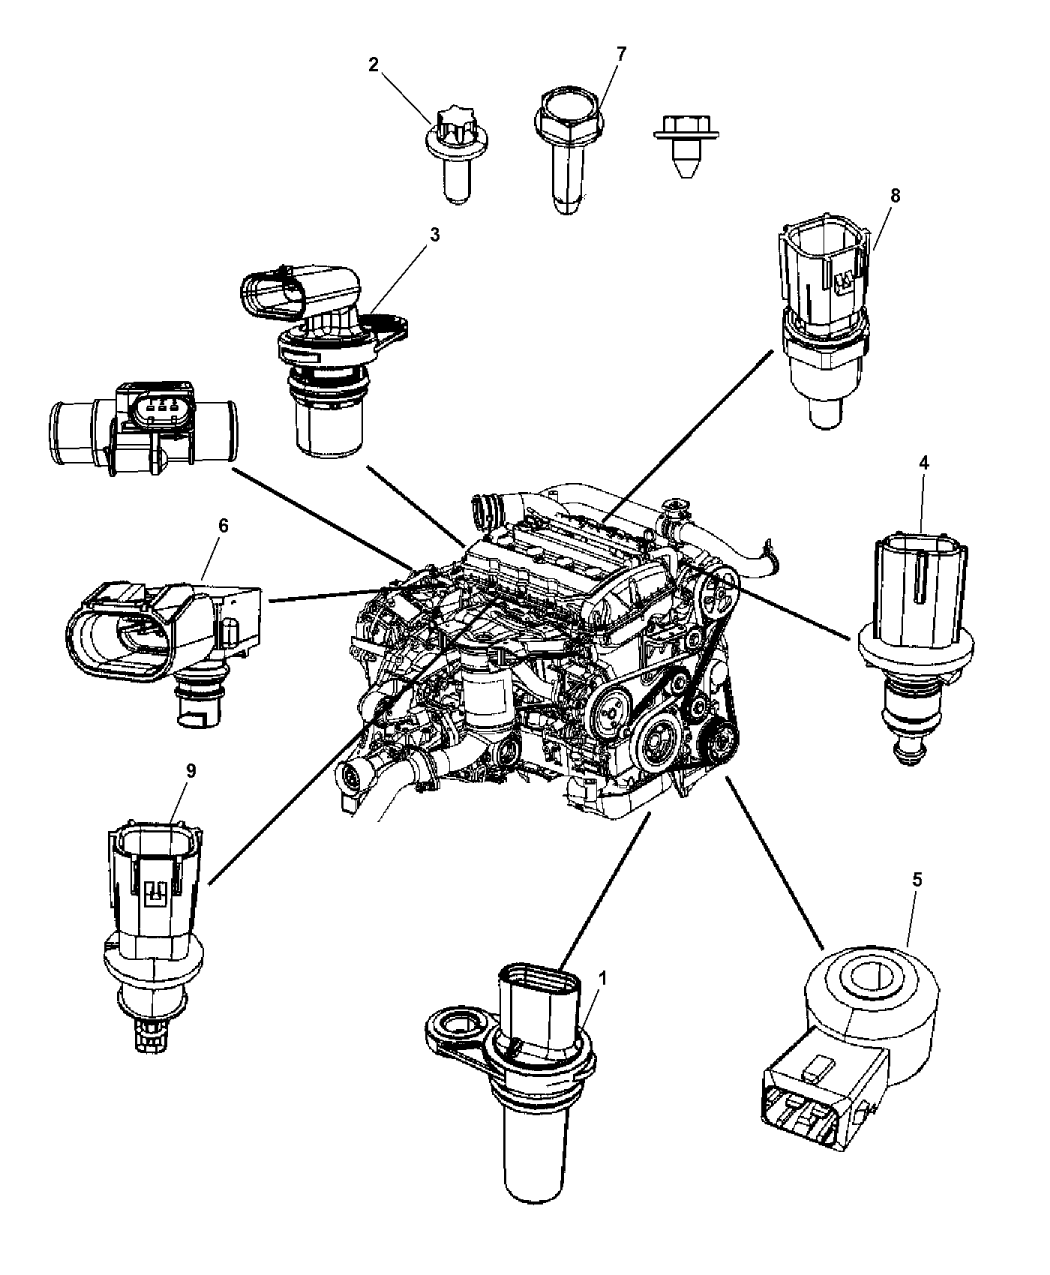 D98320 Wiring Diagram For Jeep Compass 2013 Wiring Library